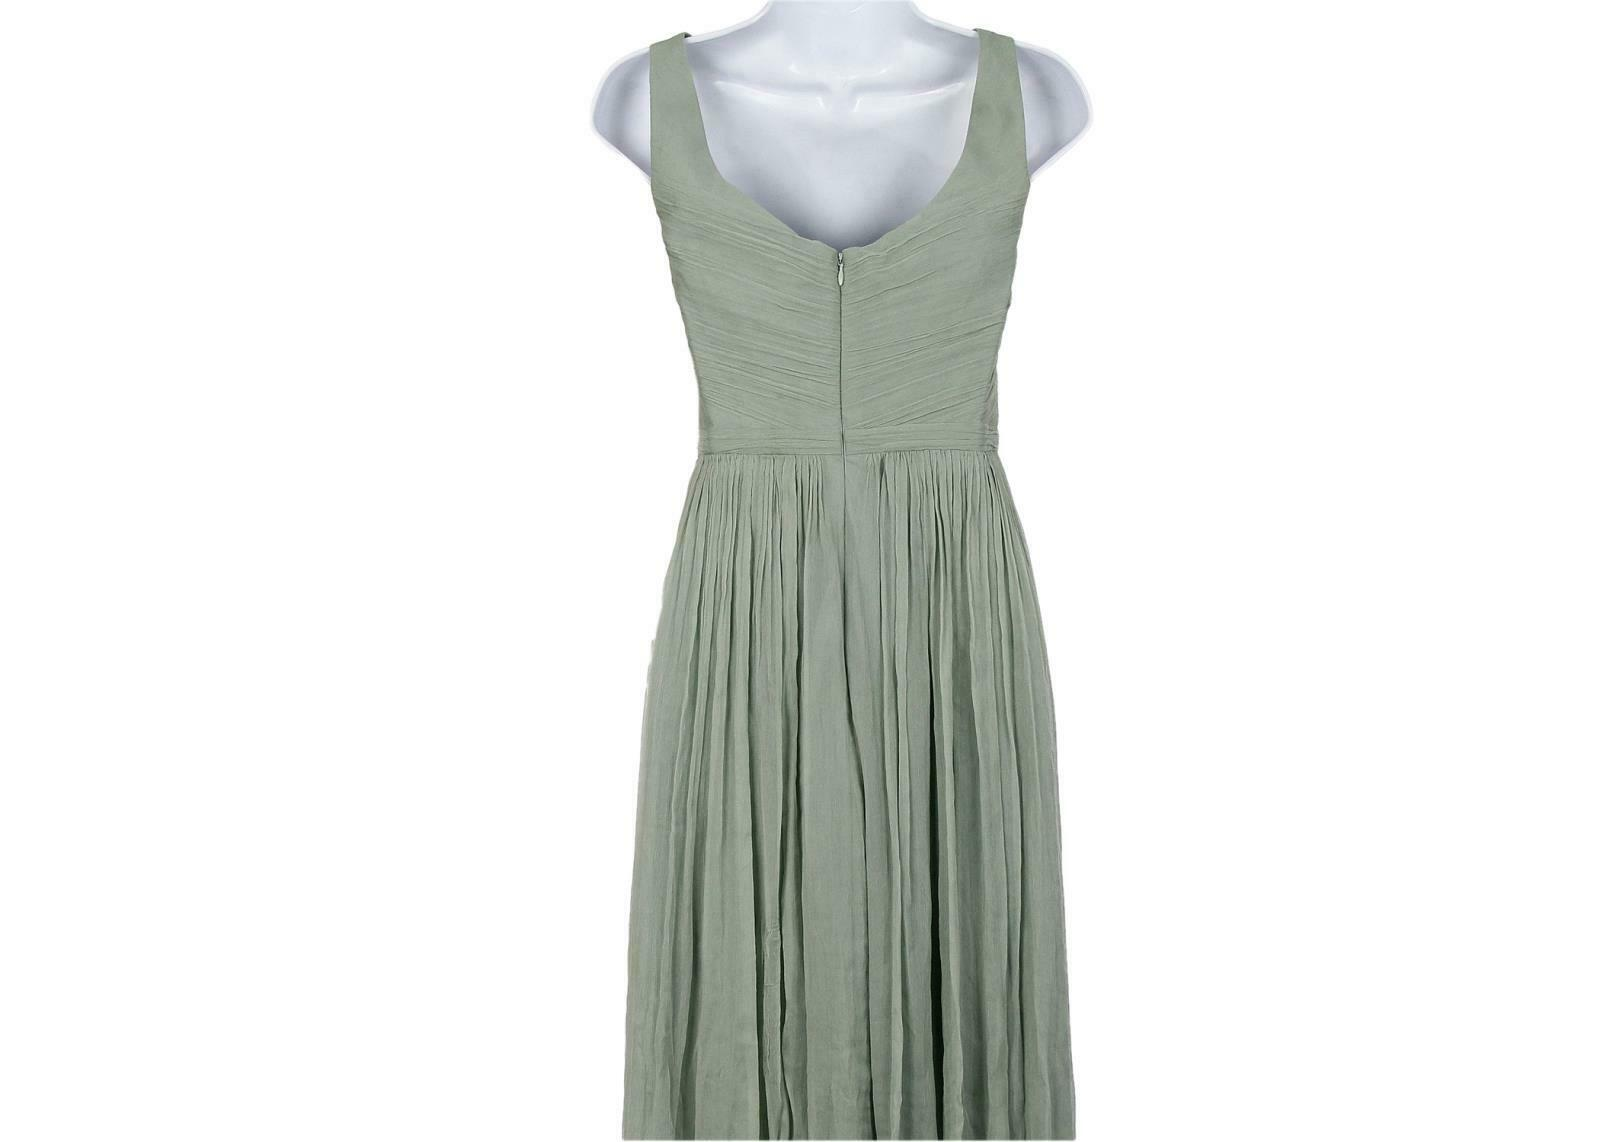 J Crew Women's Heidi Long Dress in Silk Chiffon Dusty Shale Sz 6 93075 image 4